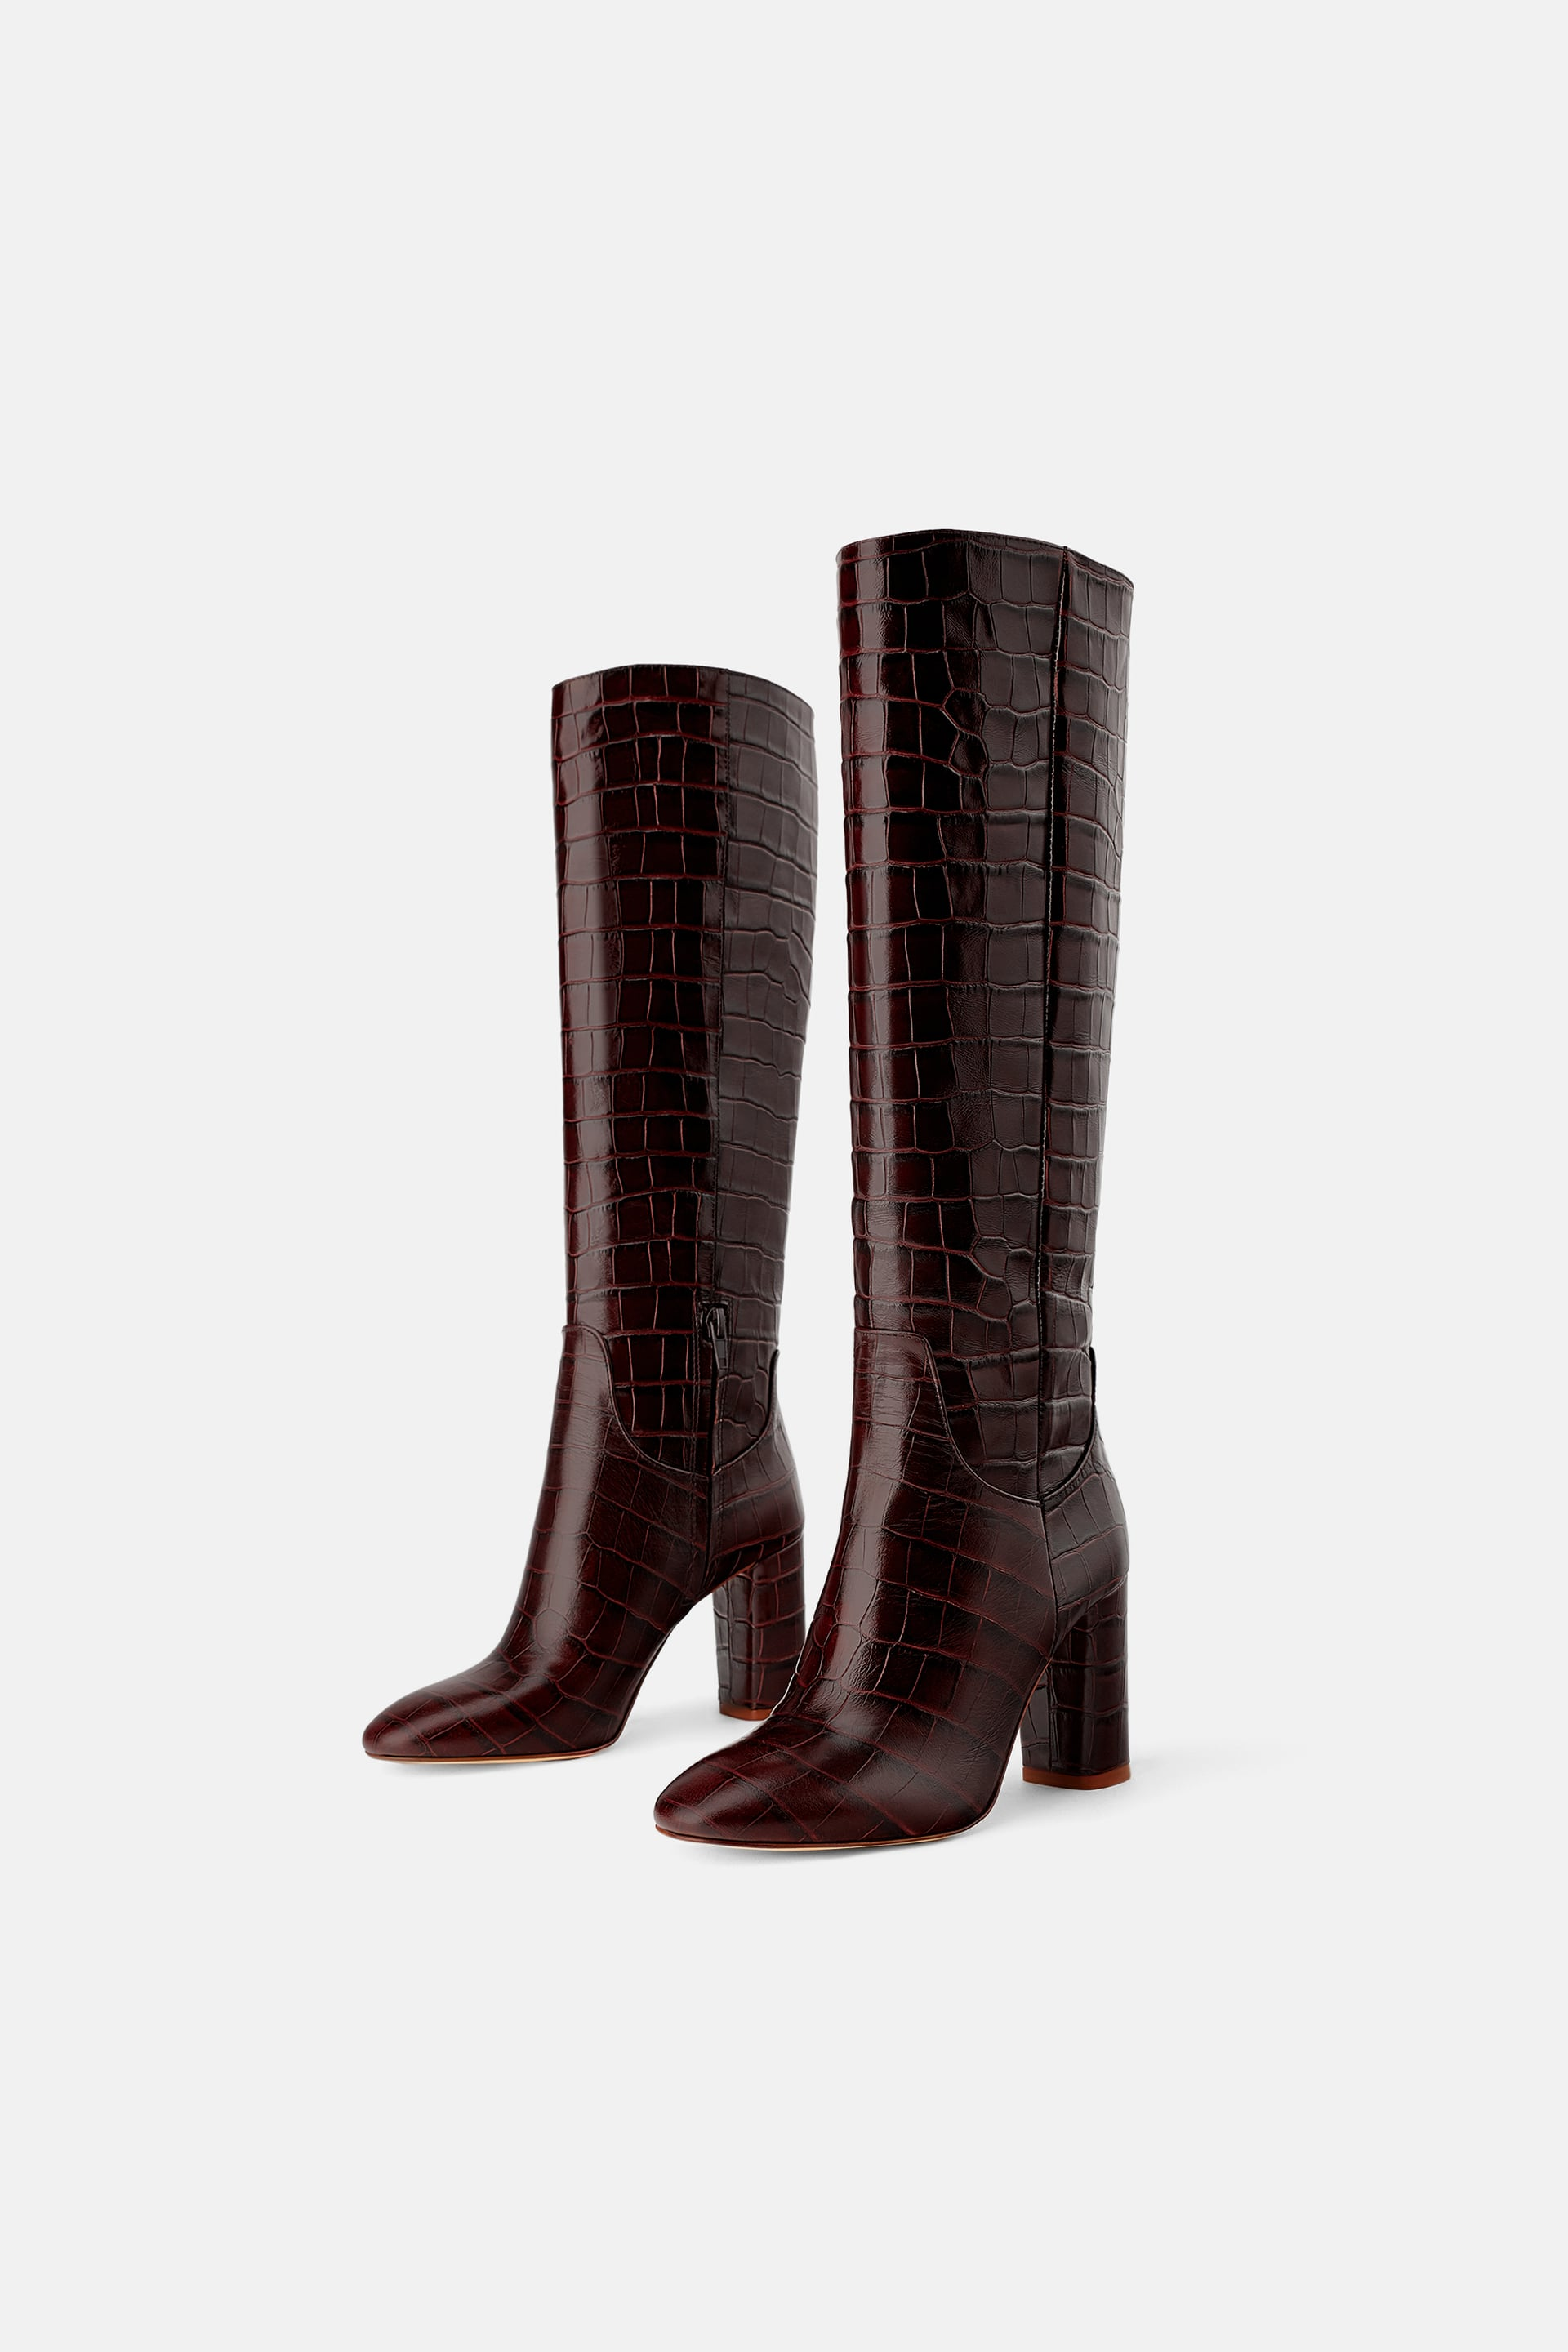 9aa98bdf288 Womens Boots Trends - Best Winter 2019 Boot Styles